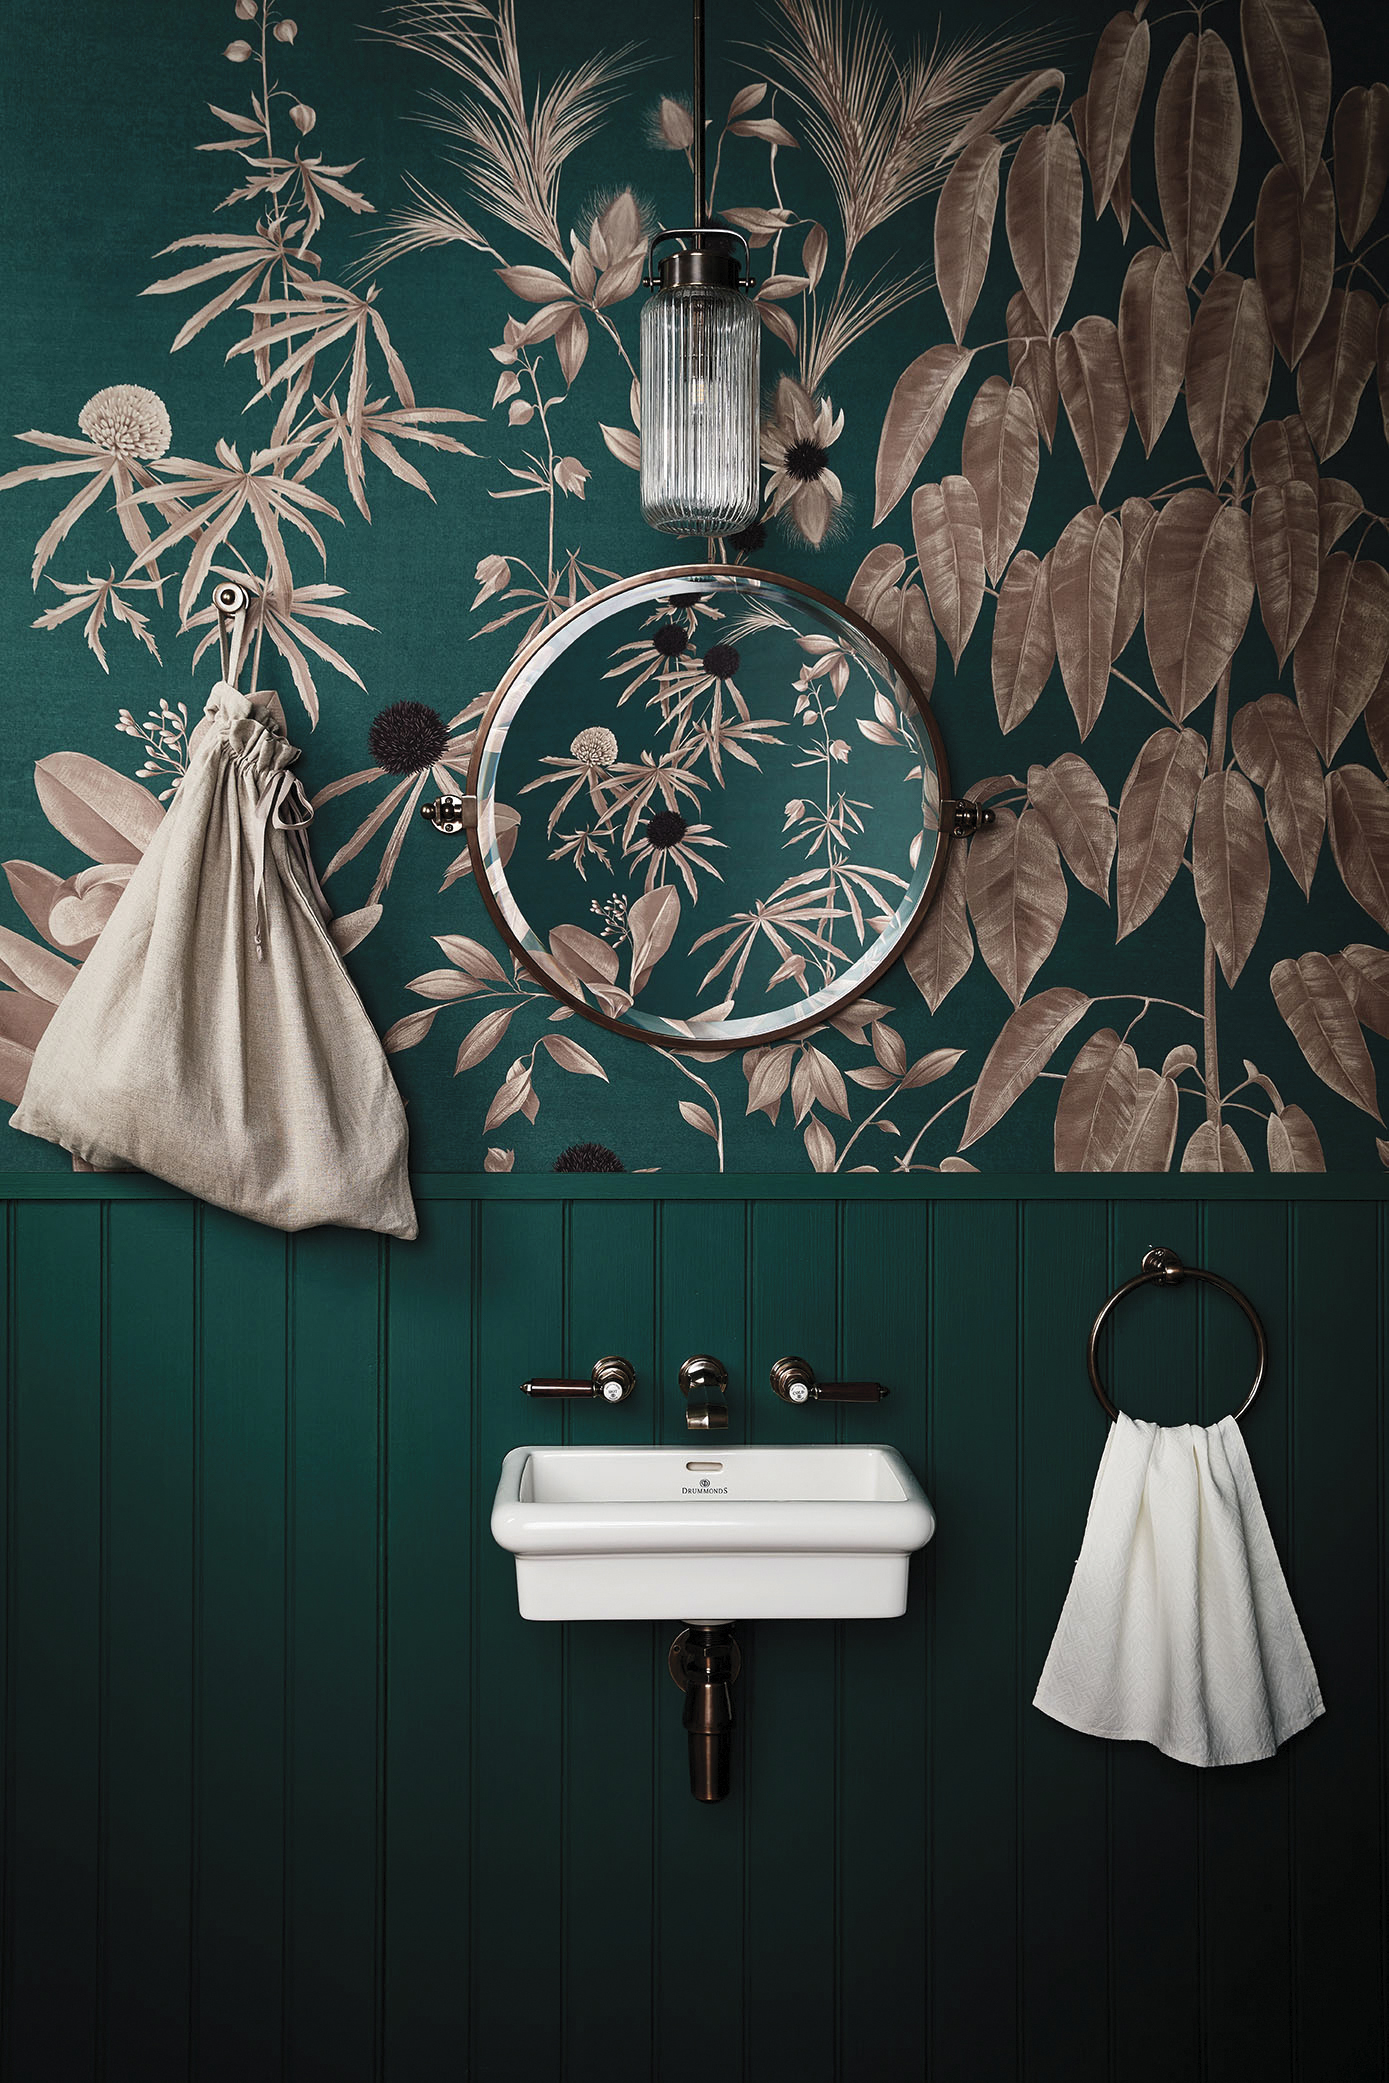 Anna_Glover_Garden_of_Serica_for_Drummonds_Bathrooms_RGB.jpg